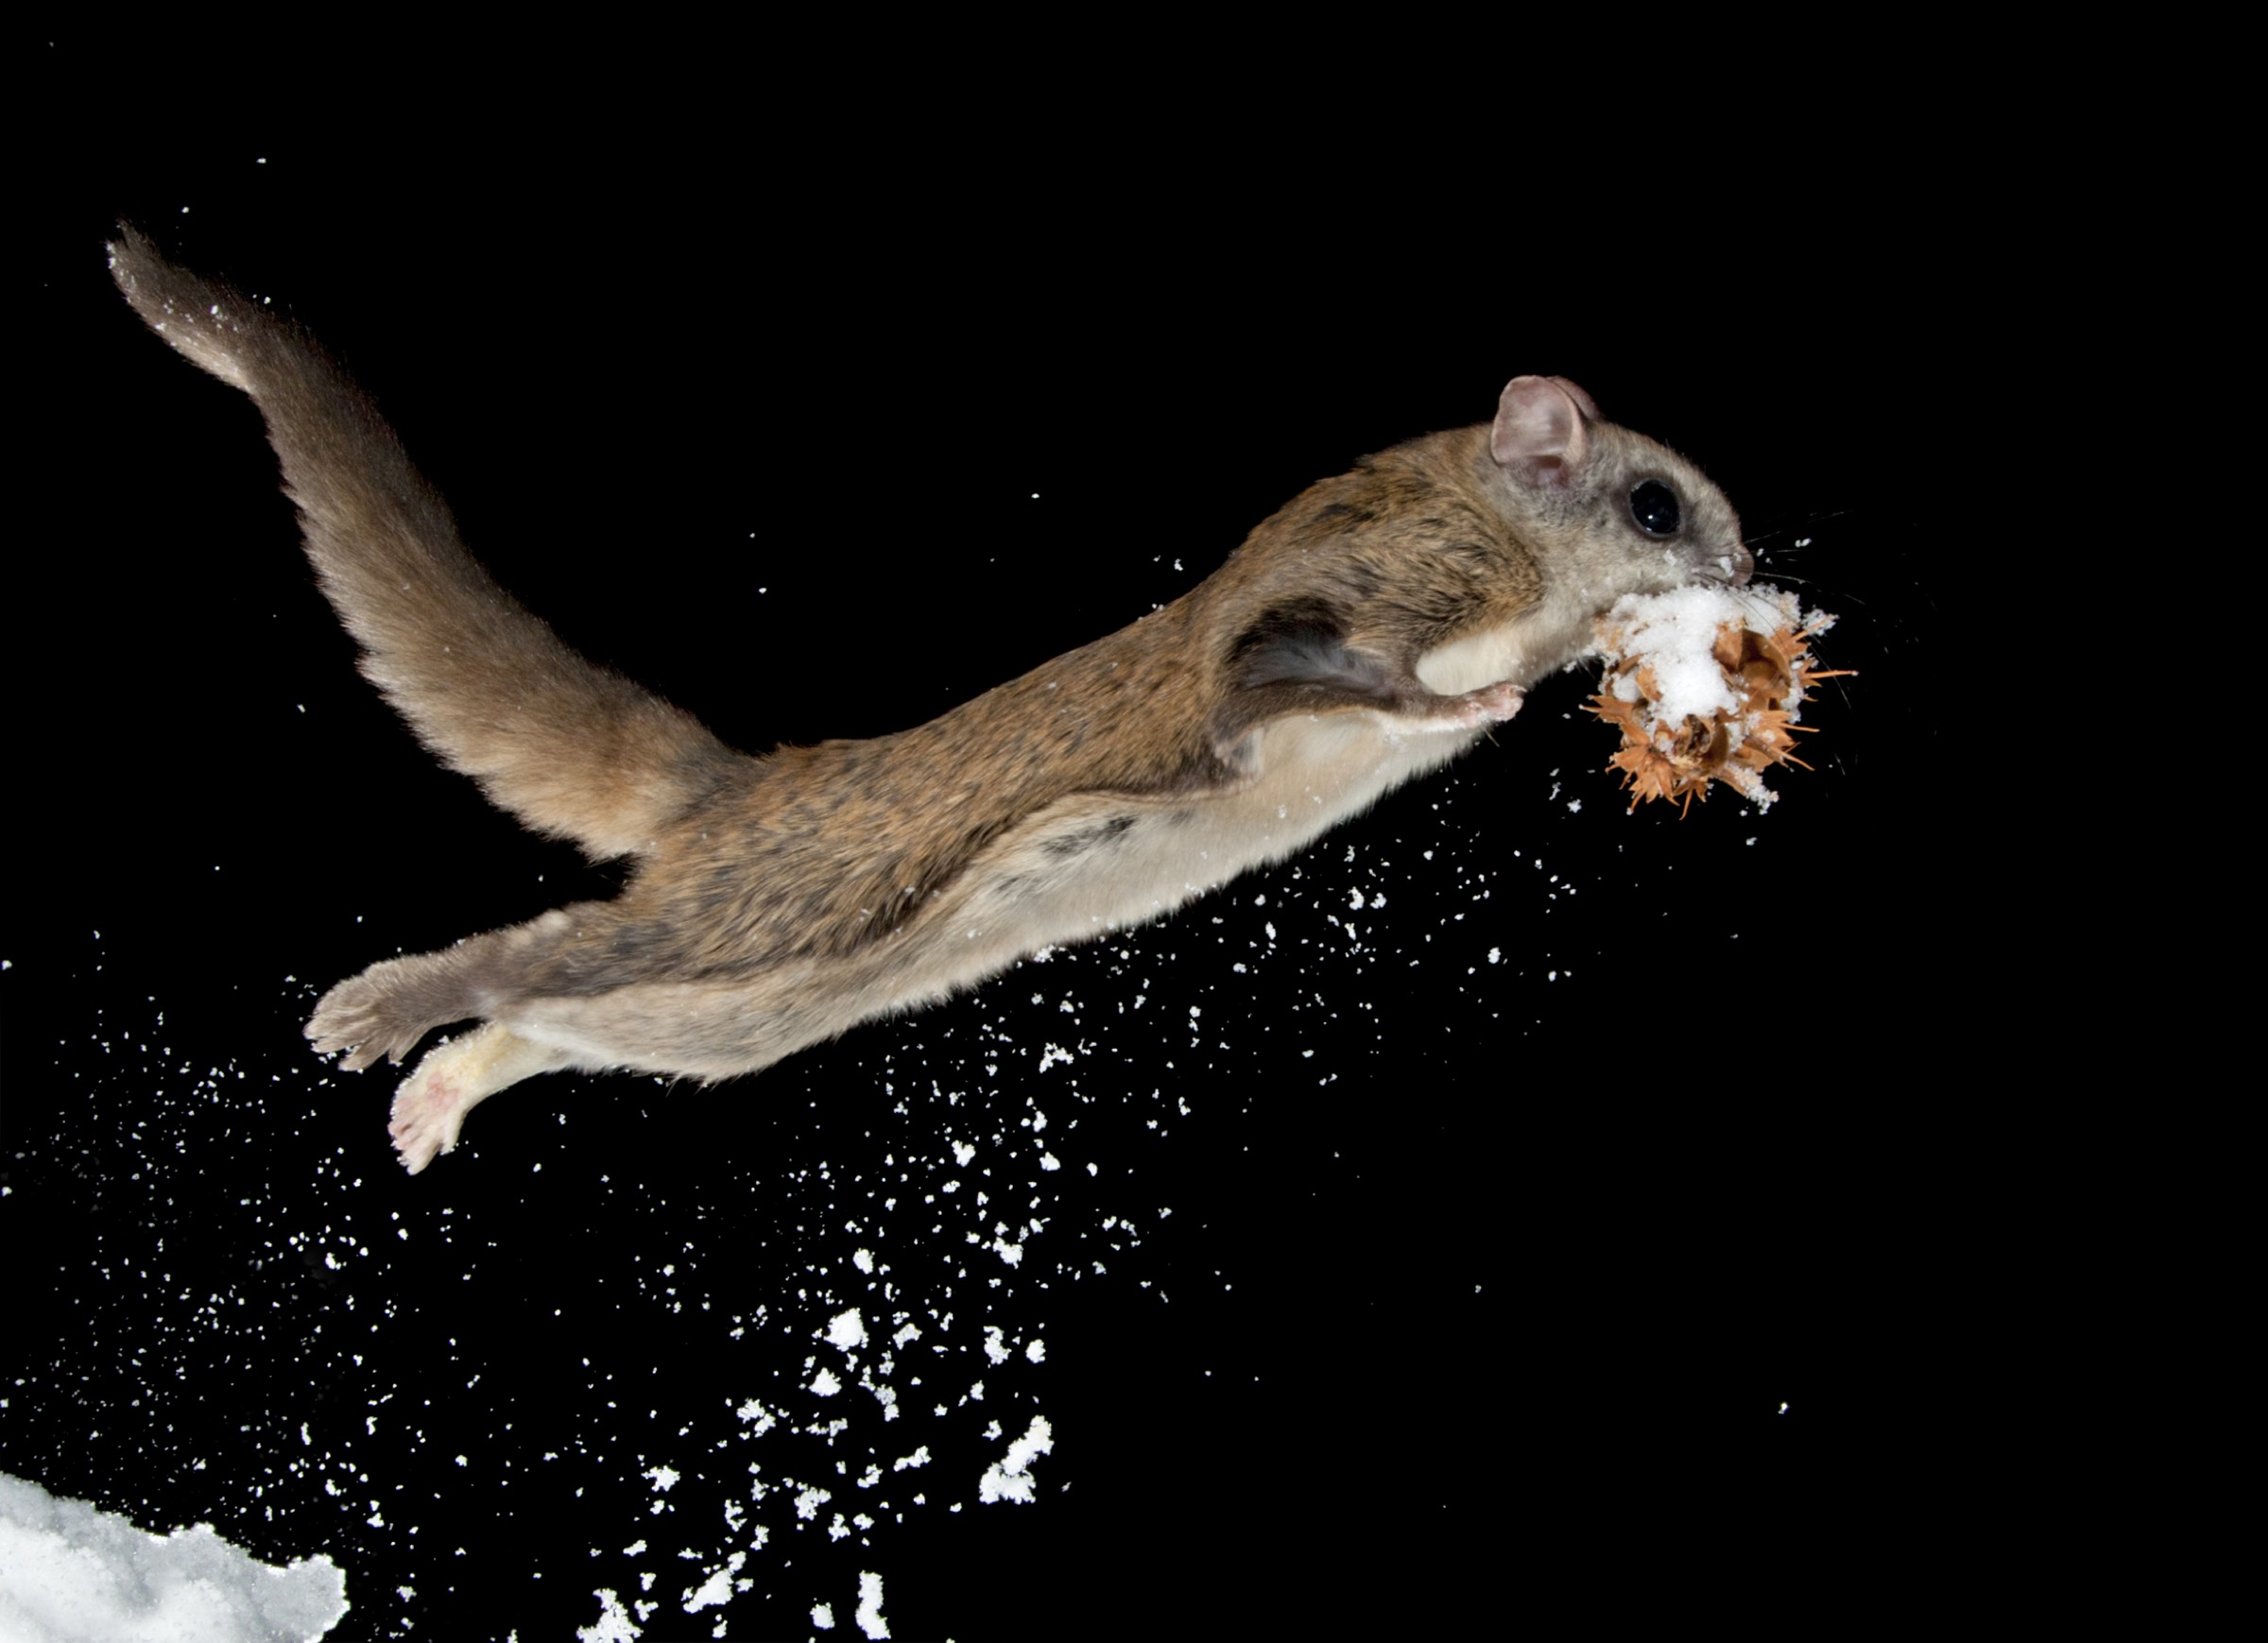 Flying squirrels are most vulnerable when on the ground as they rearrange cones and fungi in their food caches buried under the snow. Their defense is an explosive jump accompanied by an eruption of snow that tends to startle potential predators, buying the squirrels precious time to escape.